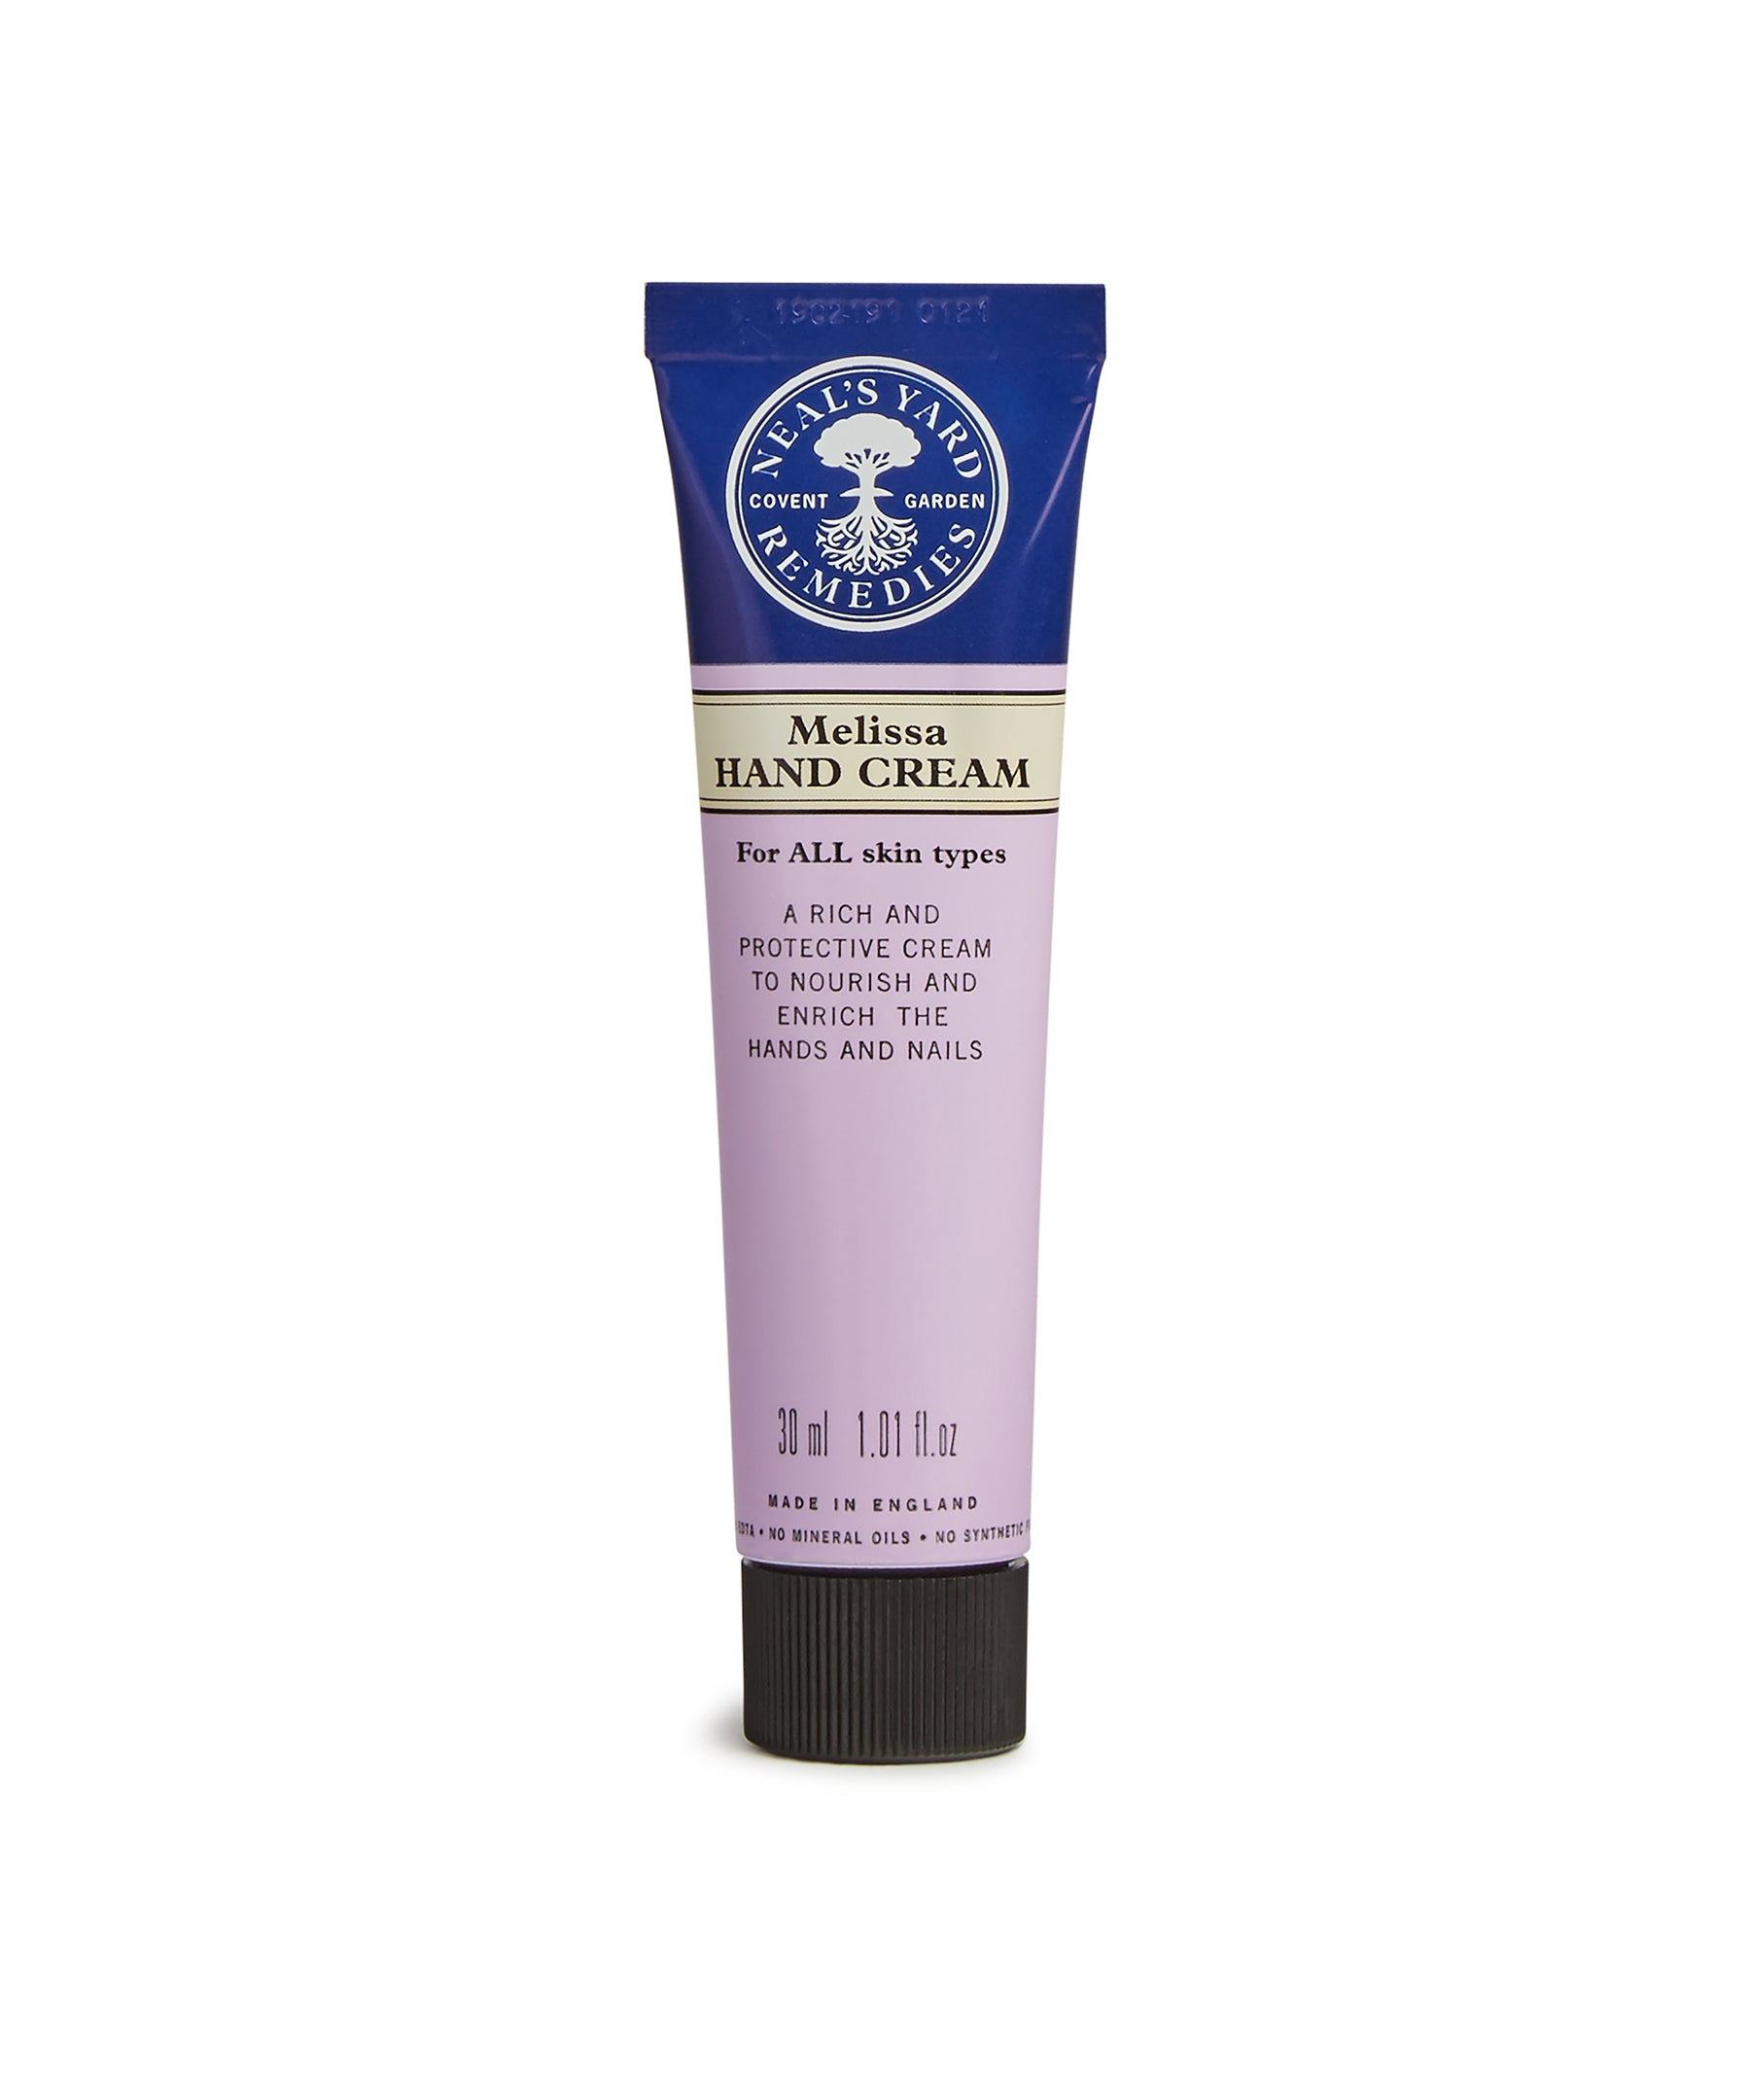 Melissa Hand Cream by Neal's Yard Remedies